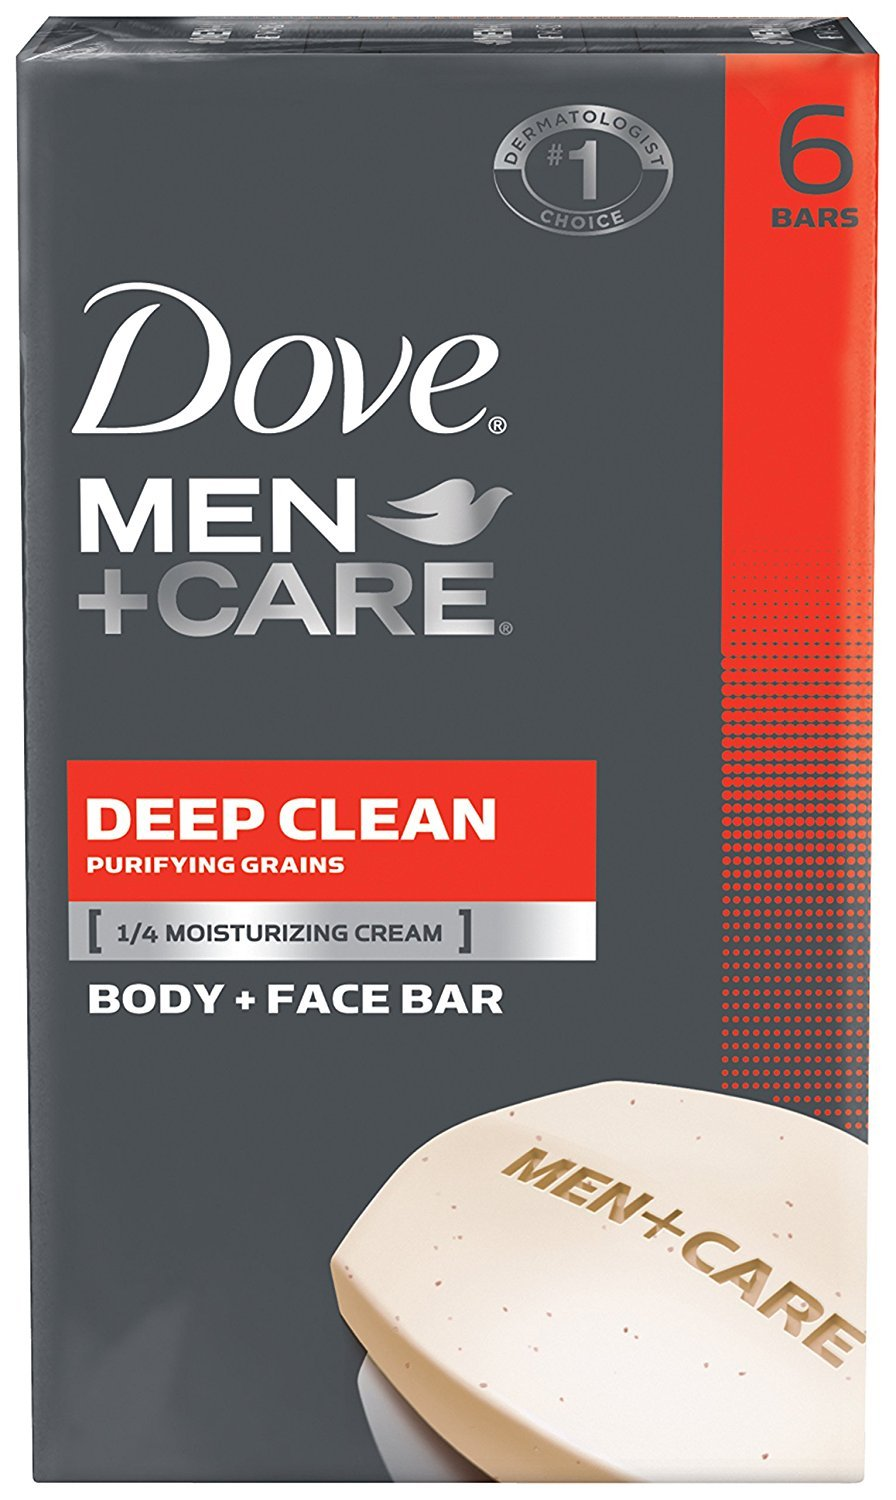 Dove Men+Care Body and Face Bar, Deep Clean 4 oz, 6 Bar